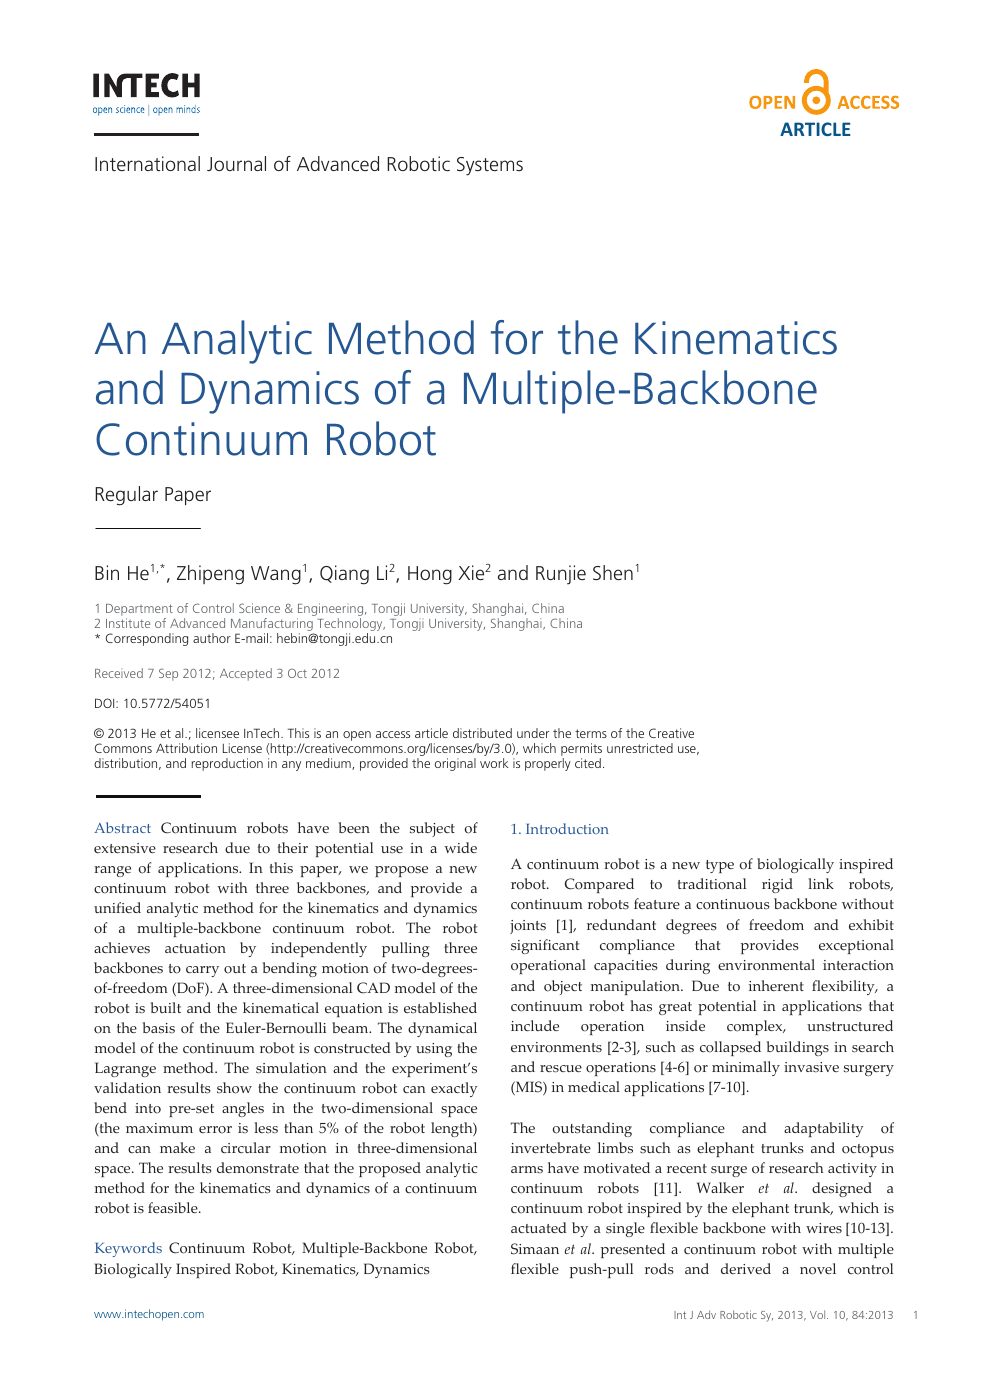 An Analytic Method for the Kinematics and Dynamics of a Multiple